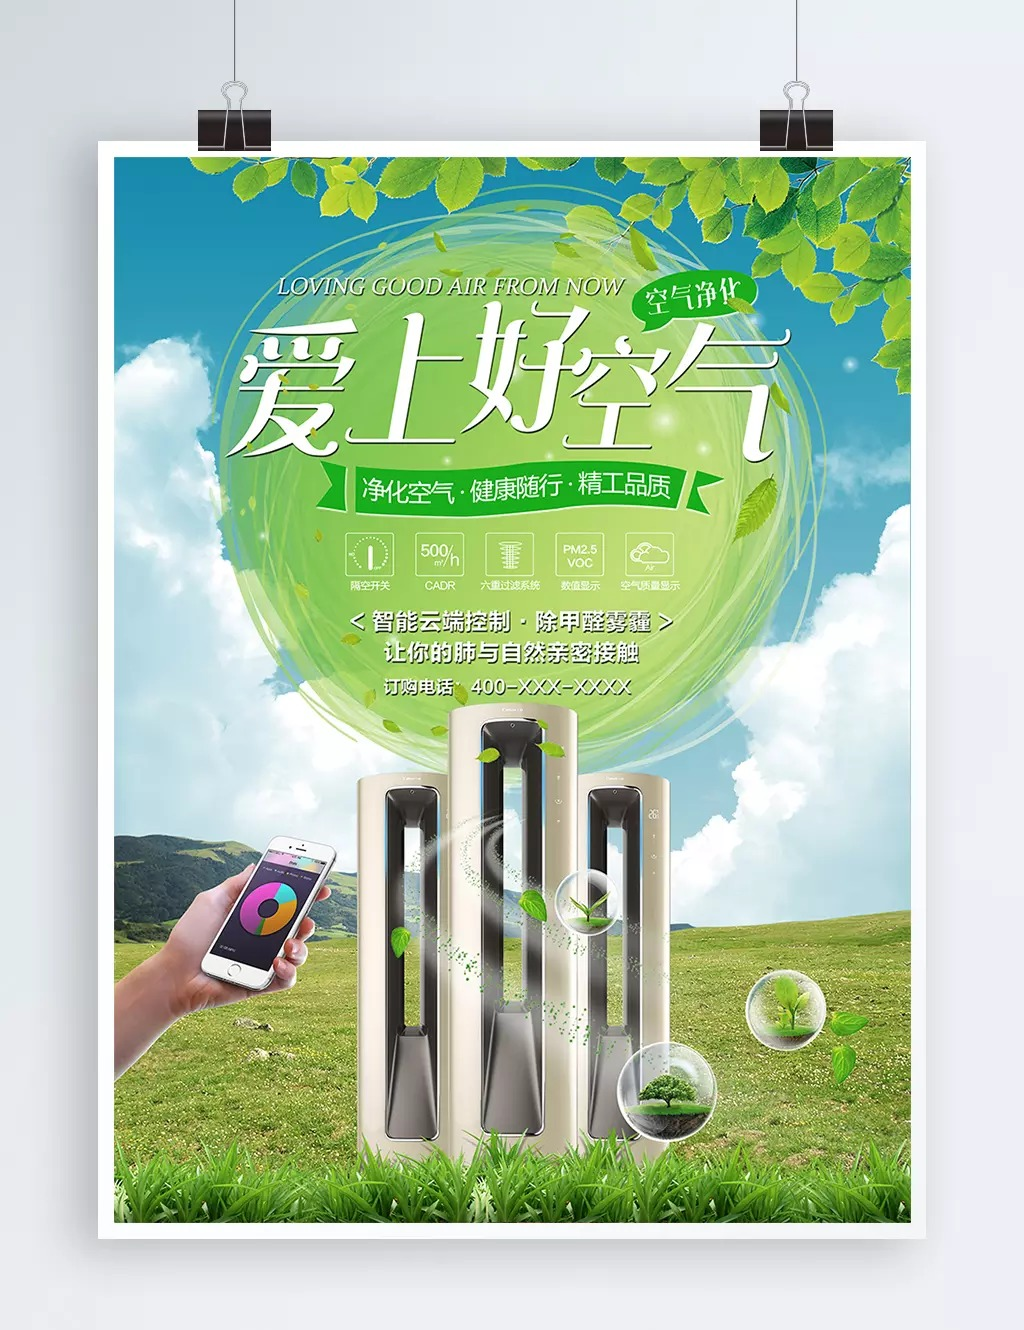 https pngtree com freepng fresh and simple air purifier poster board purifier electric appliance propaganda poster exhibition board 4801819 html